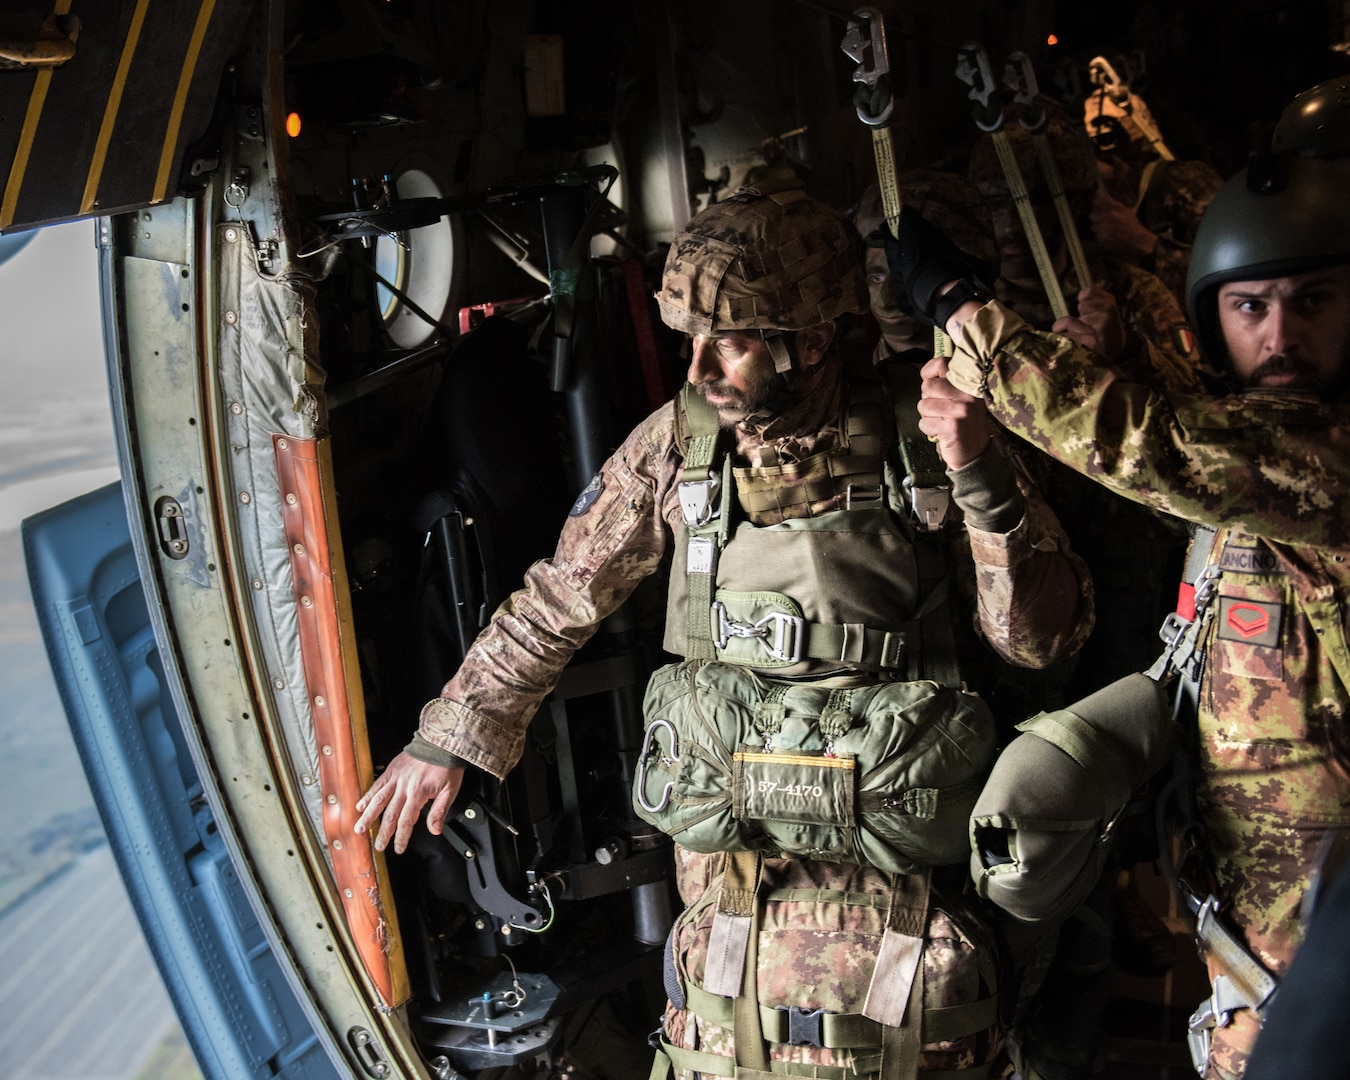 Members of the Italian Folgore, an paratrooper brigade from the Italian Army, execute an airdrop with members of the Kentucky Air National Guard's 123rd Airlift Wing in Pisa, Italy, Nov. 7, 2019, as part of Mangusta 19, a bilateral exercise to promote readiness and interoperability among NATO allies.